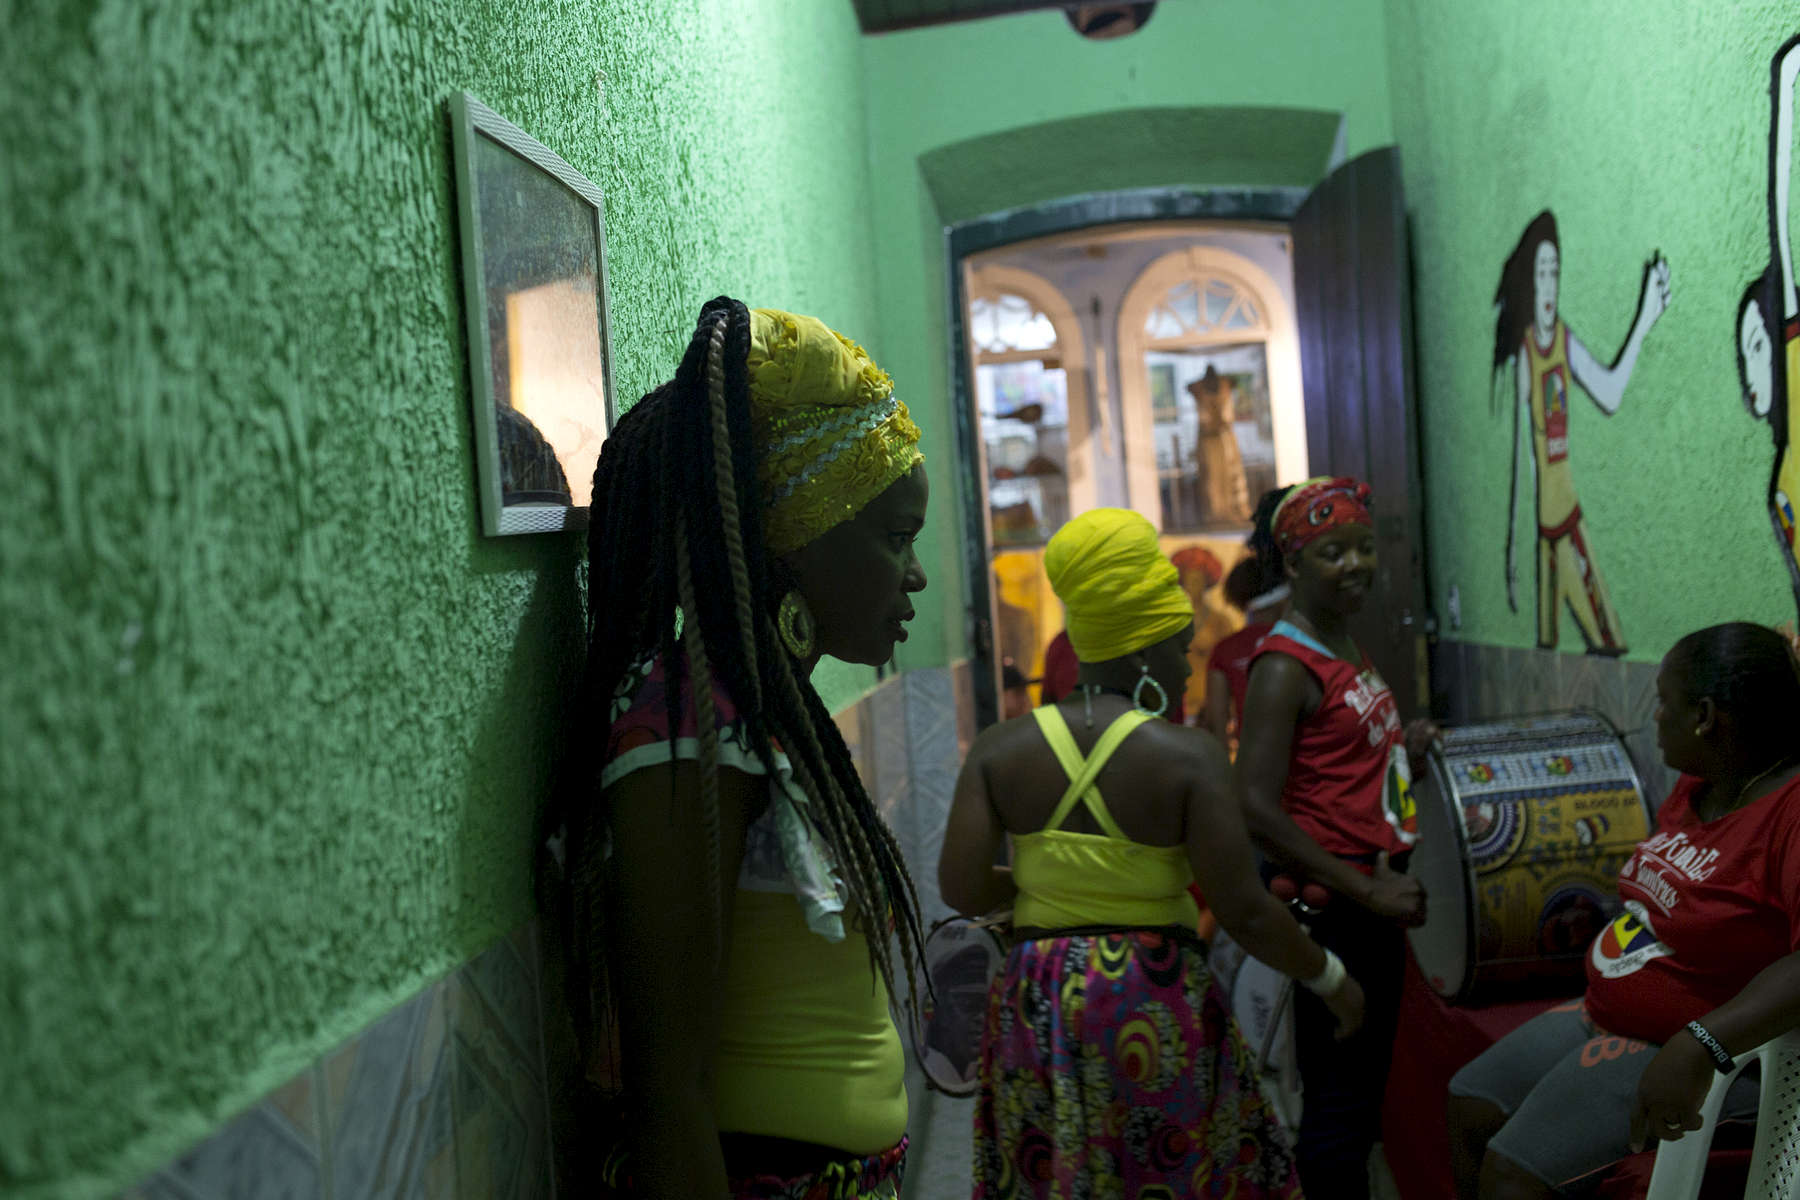 Adriana Portela, left, waits in the front hallway of Project Didá before a performance.